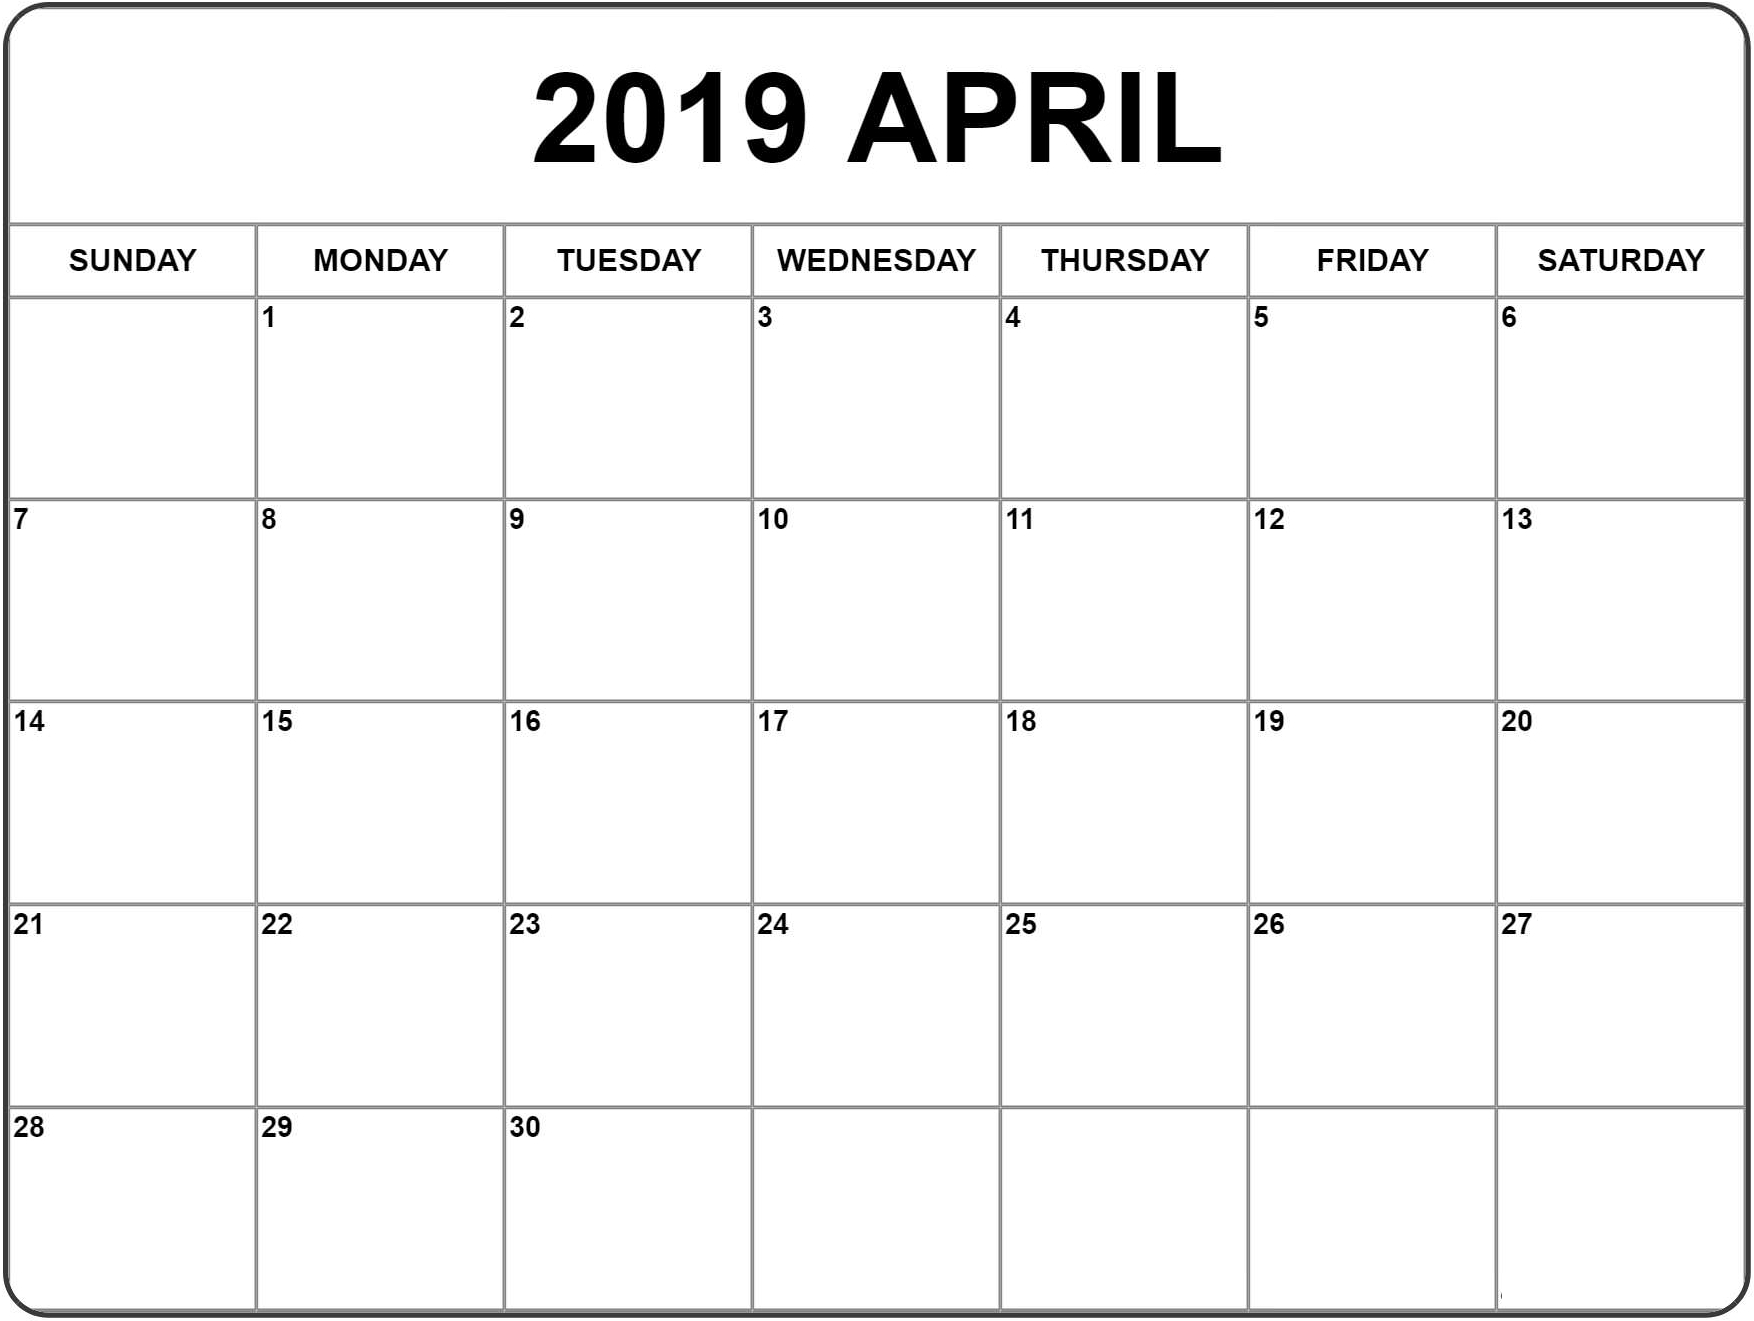 Blank Fillable April 2019 Calendar | Blank Calendar Pages regarding Blank Fillable Calendar